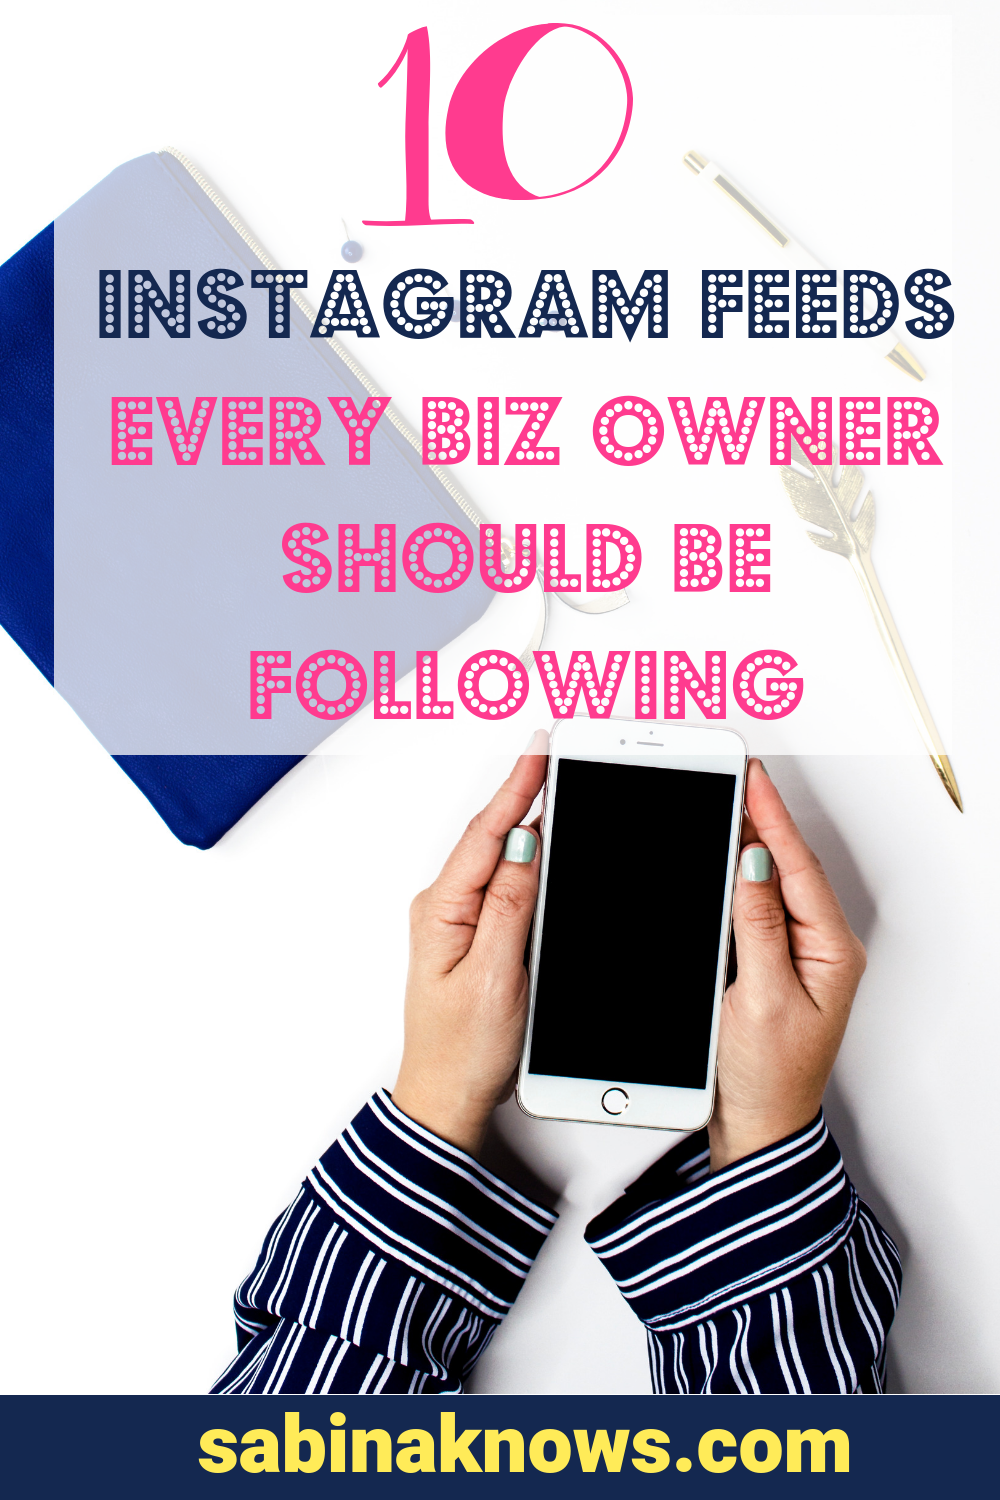 InstaStory has been a game changer for me: Increased engagement with my community on and off Instagram, a growth in my community, and major conversion from newsletter signups to website activity and purchases. Follow these best Instagram accounts for business inspiration. #bestinstagramaccounts #businesstips #biztips #businessinspo #bizspo